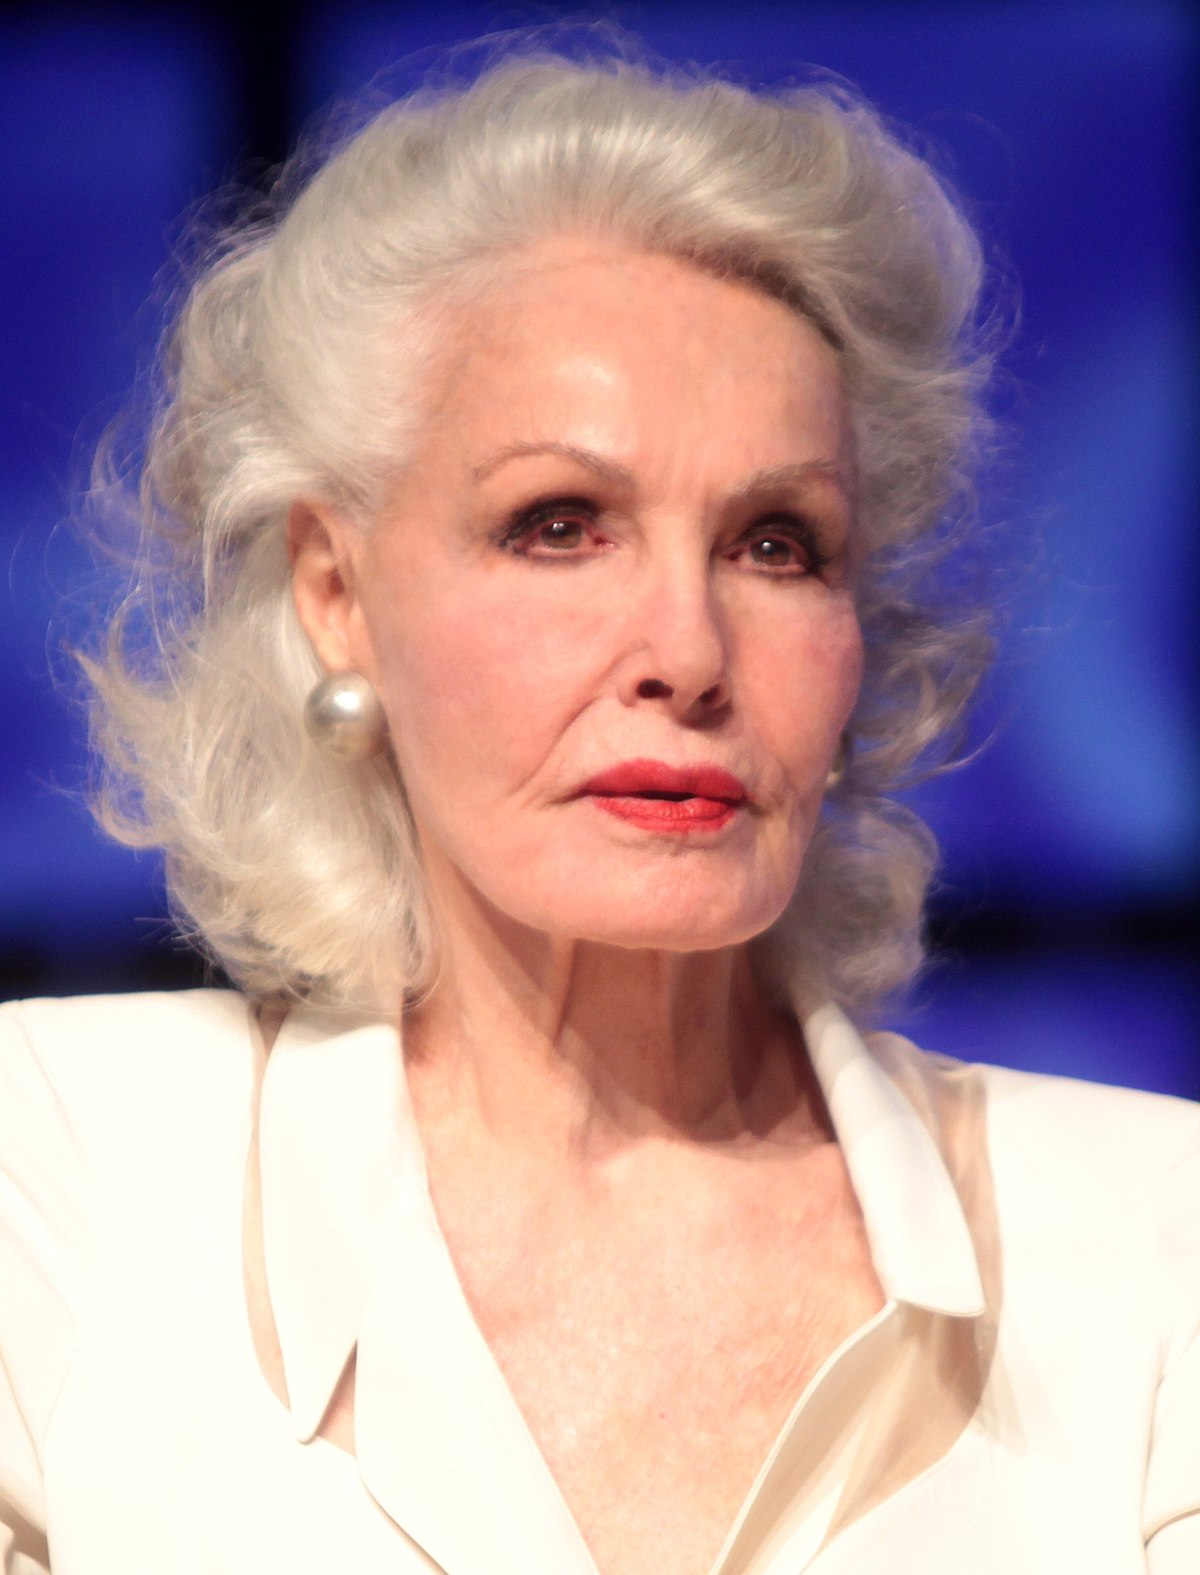 Julie Newmar born August 16, 1933 (age 85) Julie Newmar born August 16, 1933 (age 85) new pictures